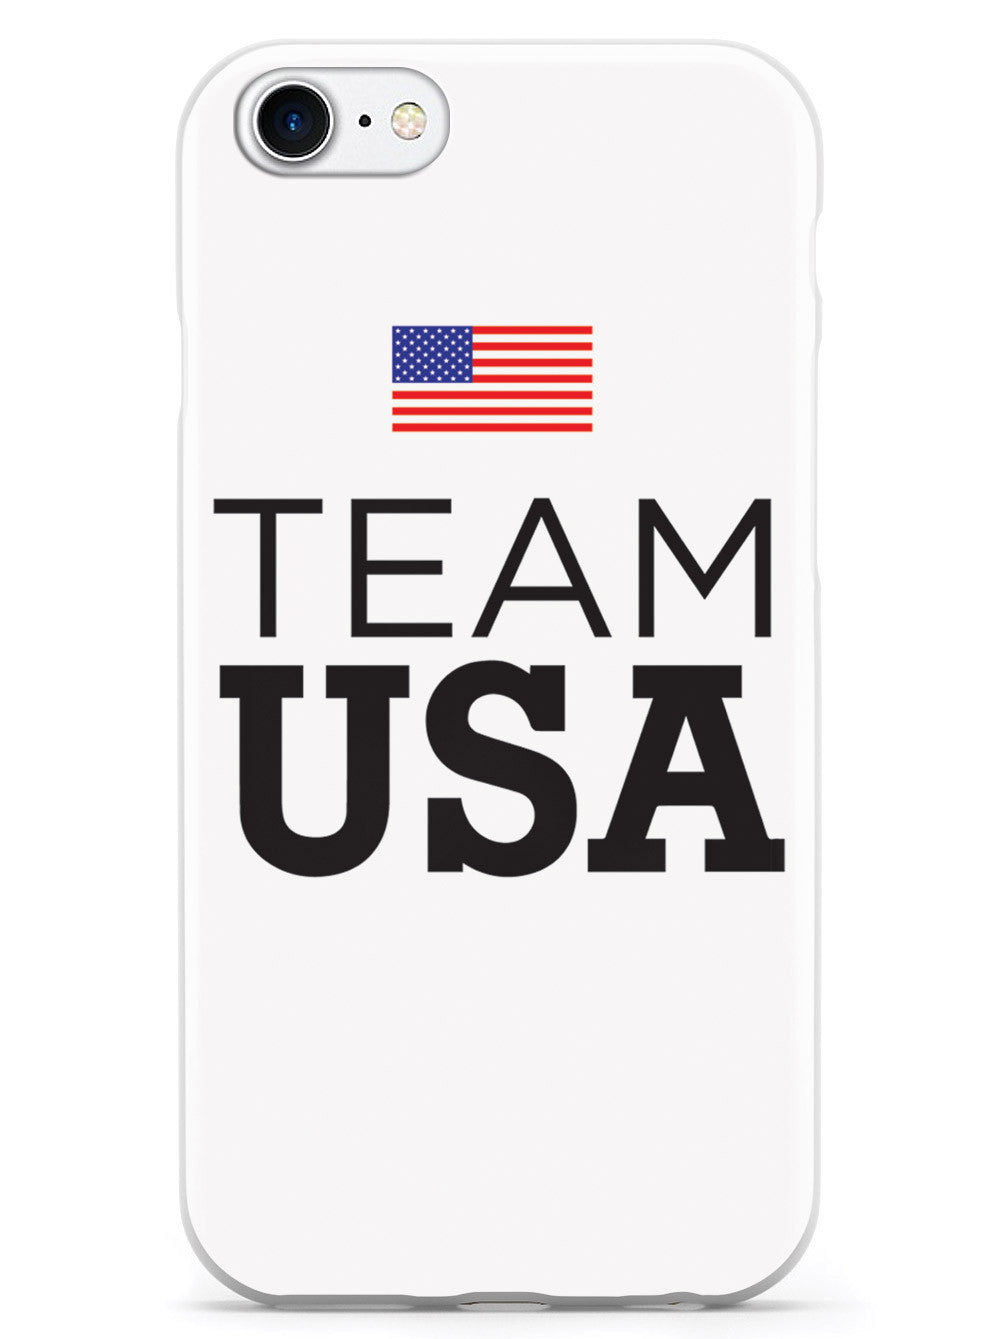 TEAM USA - White Case